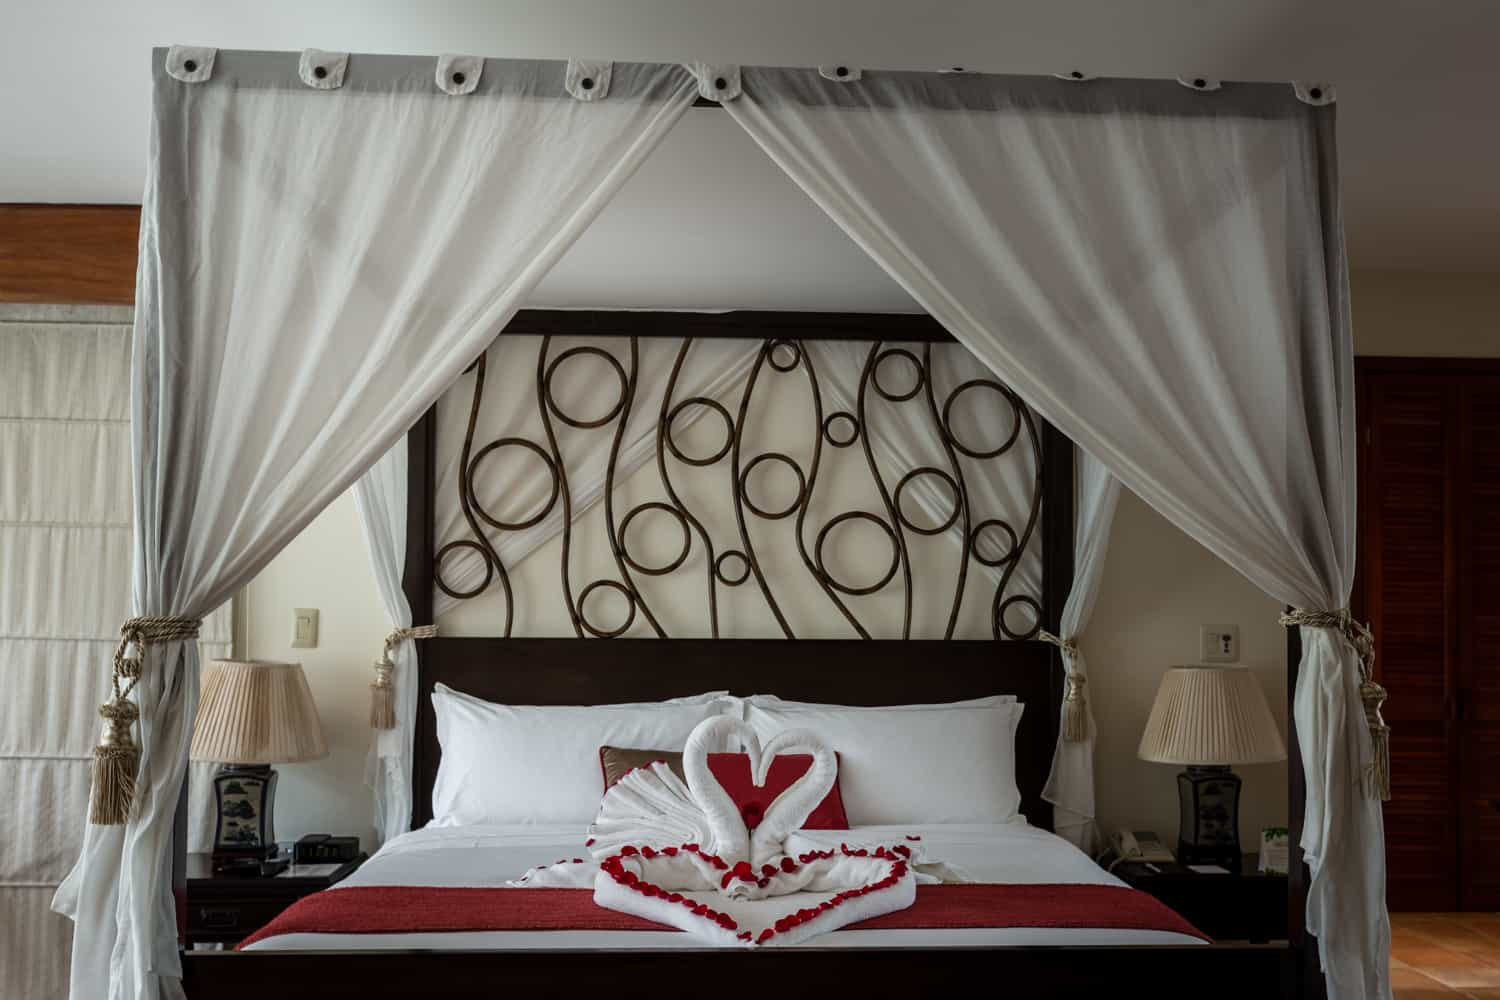 Towels folded into swans in front of heart of roses on canopy bed.